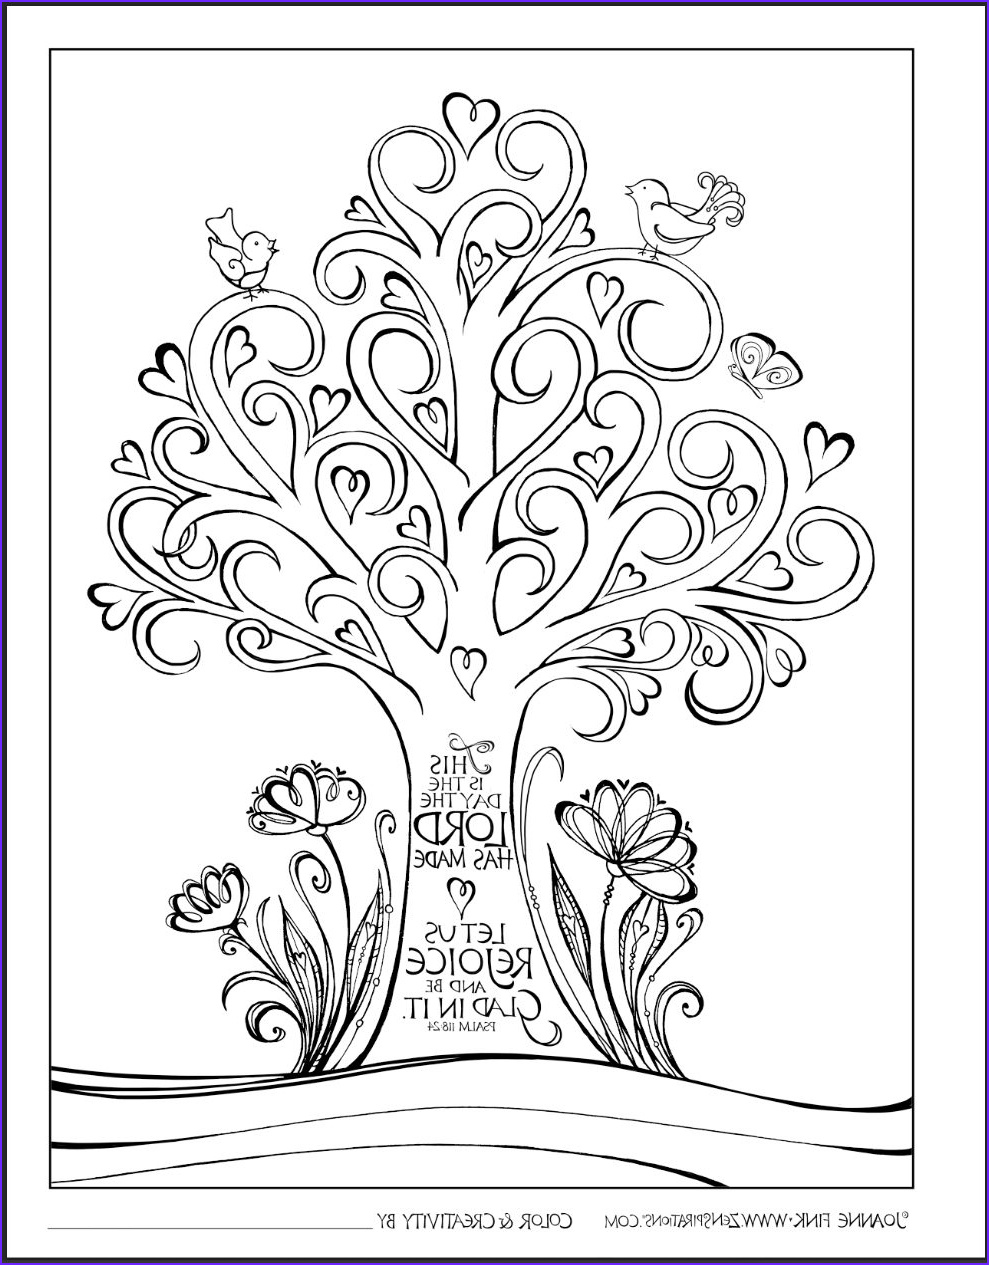 Religious Coloring Pages for Adults Beautiful Photos Free Downloadable Create Color Pattern Play Scripture